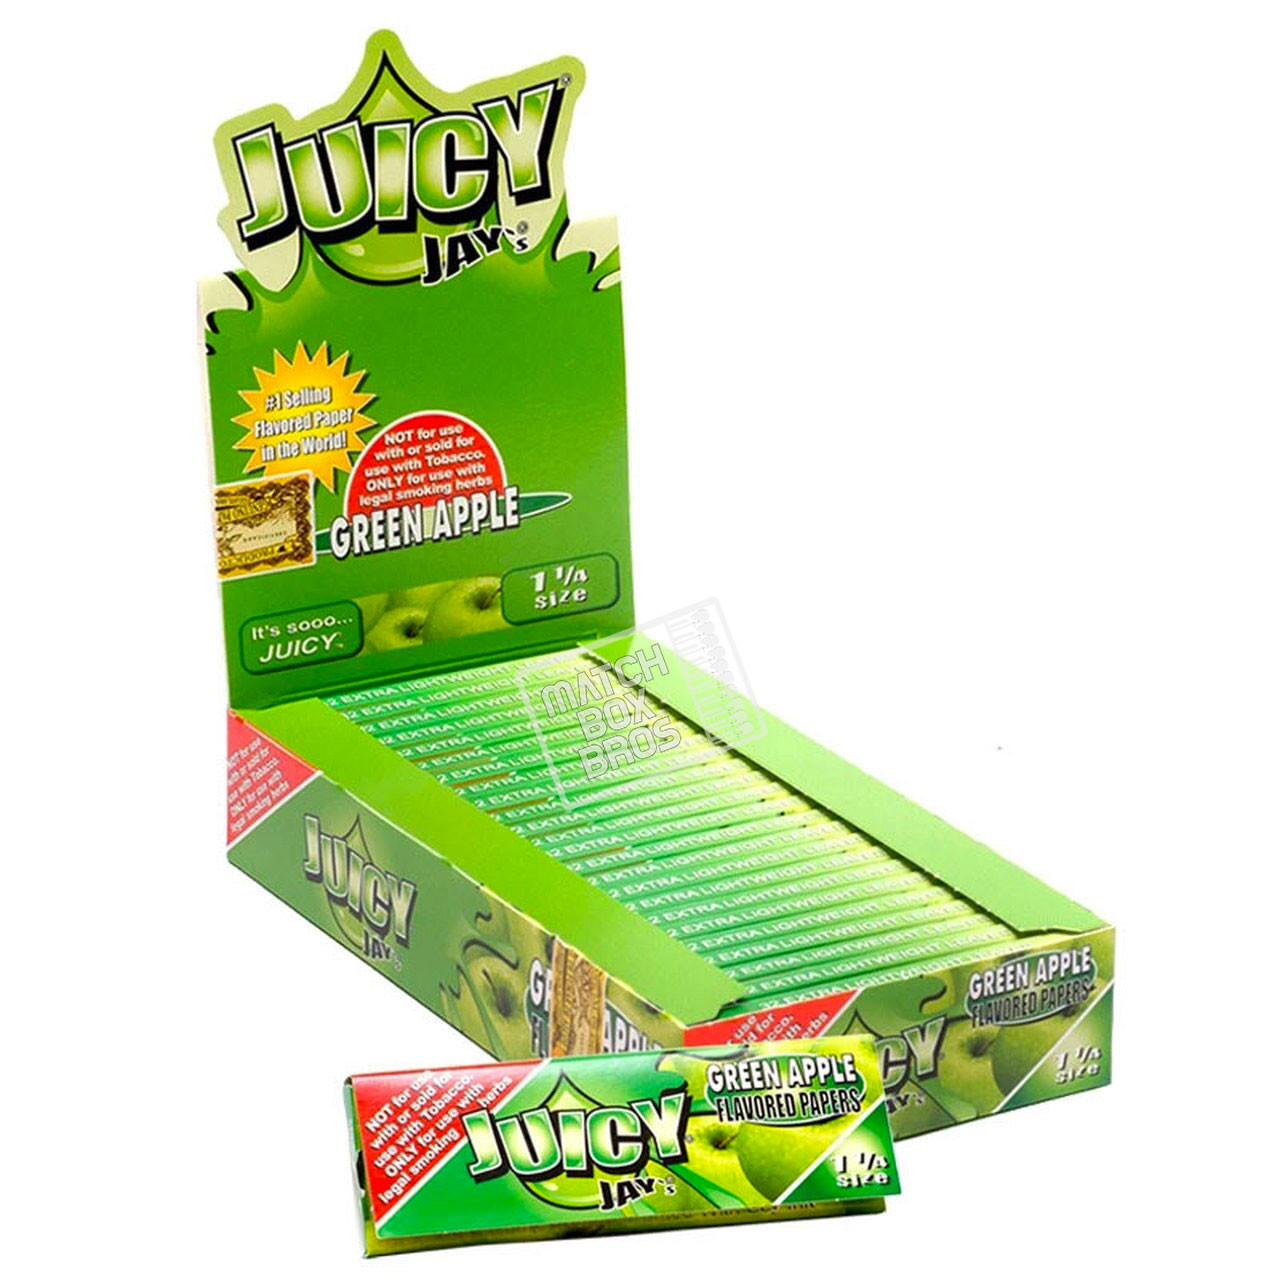 Juicy Jay's 1¼ Green Apple Flavoured Paper